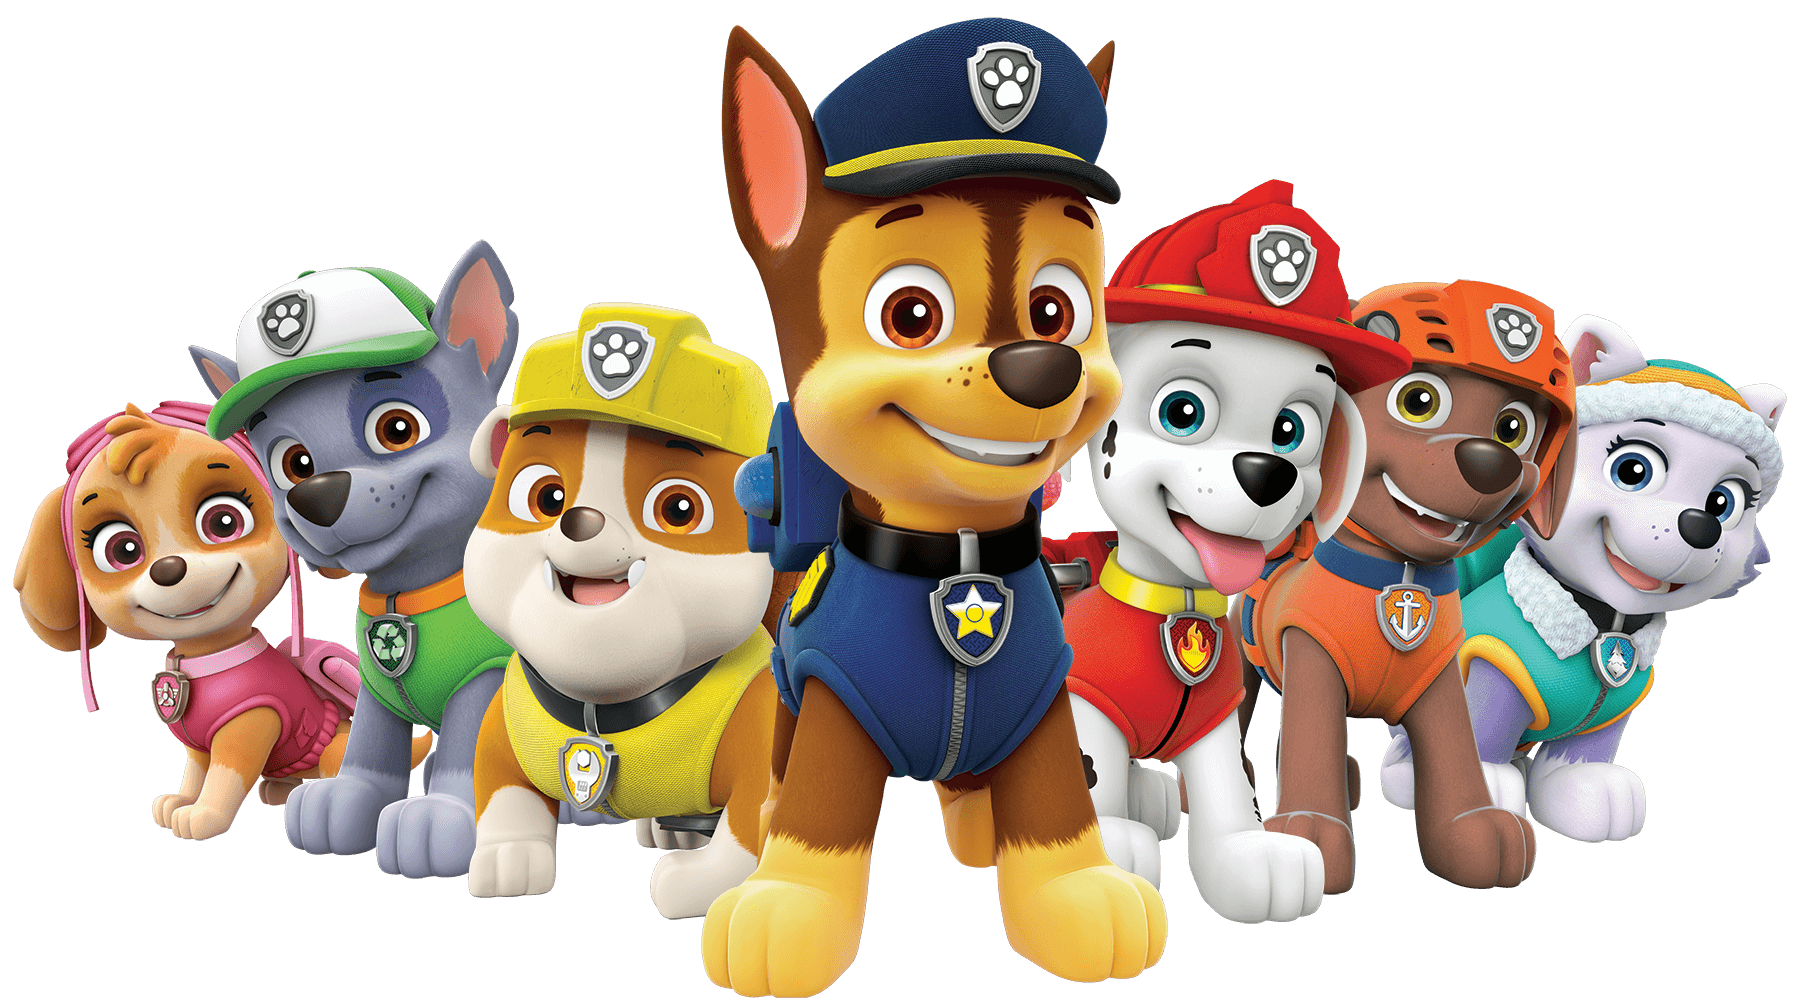 Paw patrol png. Free clipart at getdrawings